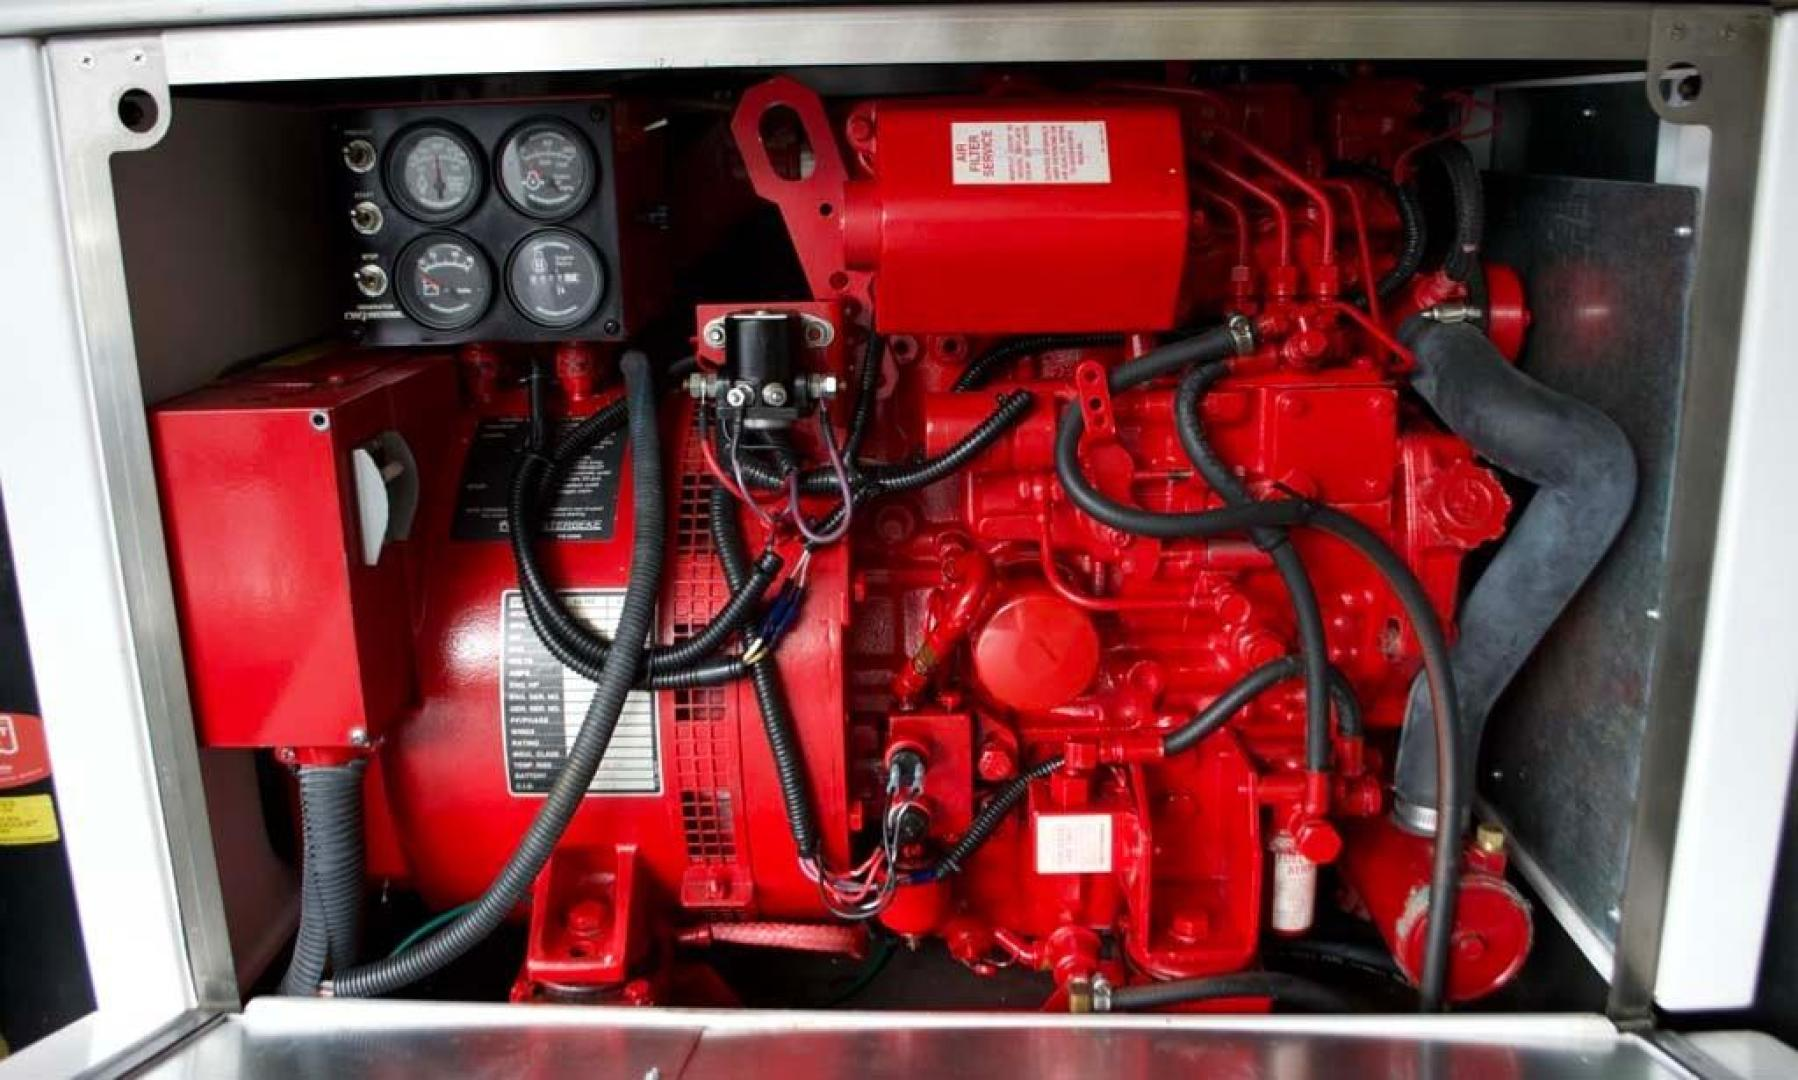 Regal-52-Sport-Coupe-2008-Sea-Ya-Windever-Long-Island-New-York-United-States-Genset-930182